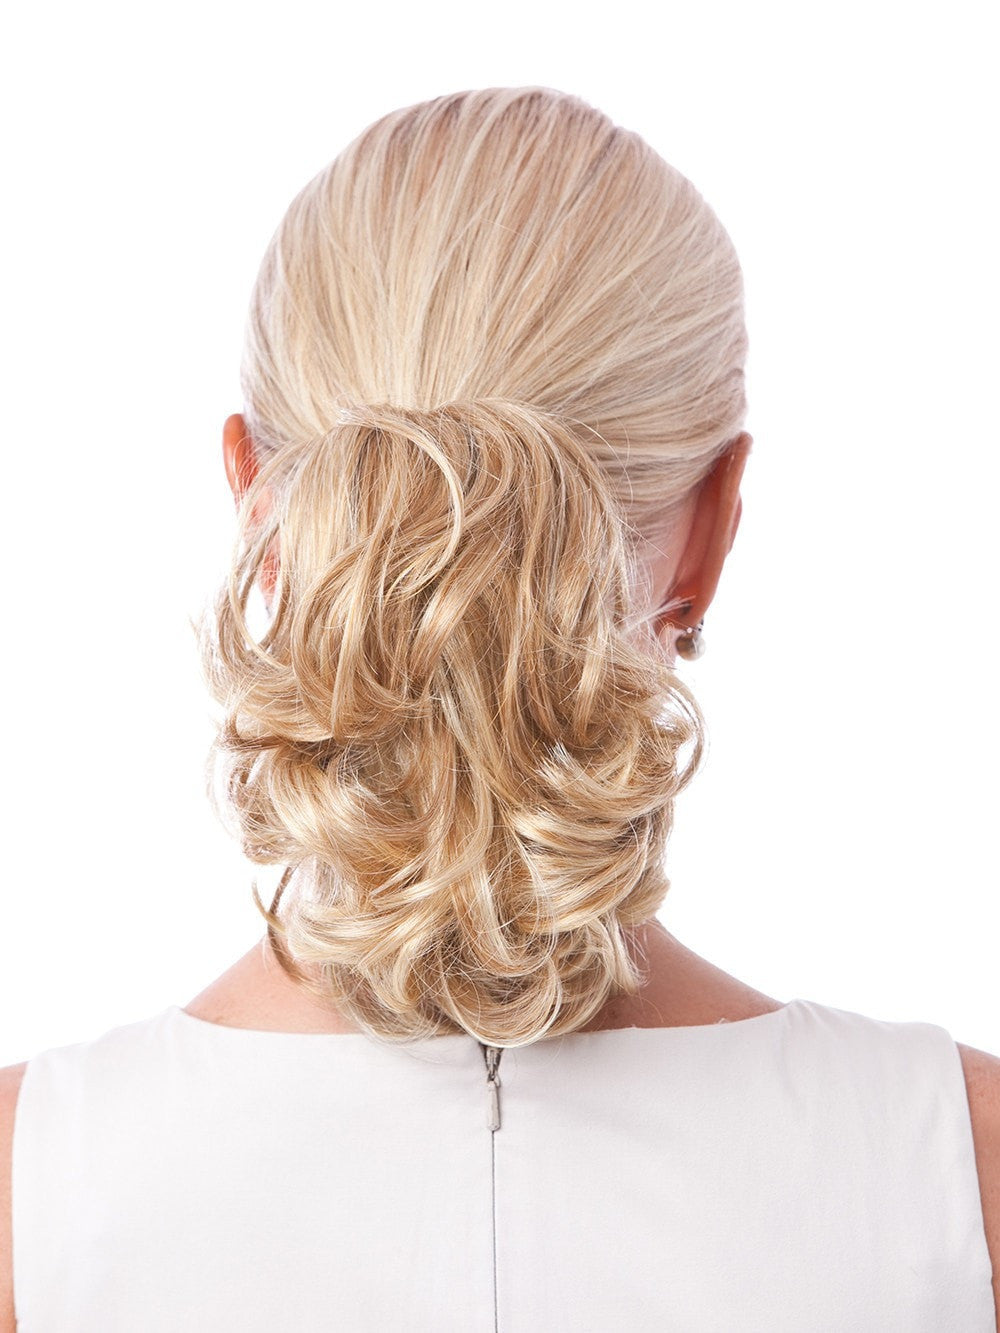 Pony curls by toni brattin ponytail hair extensions 931 medium blonde golden blonde with lighter blonde highlights pmusecretfo Gallery